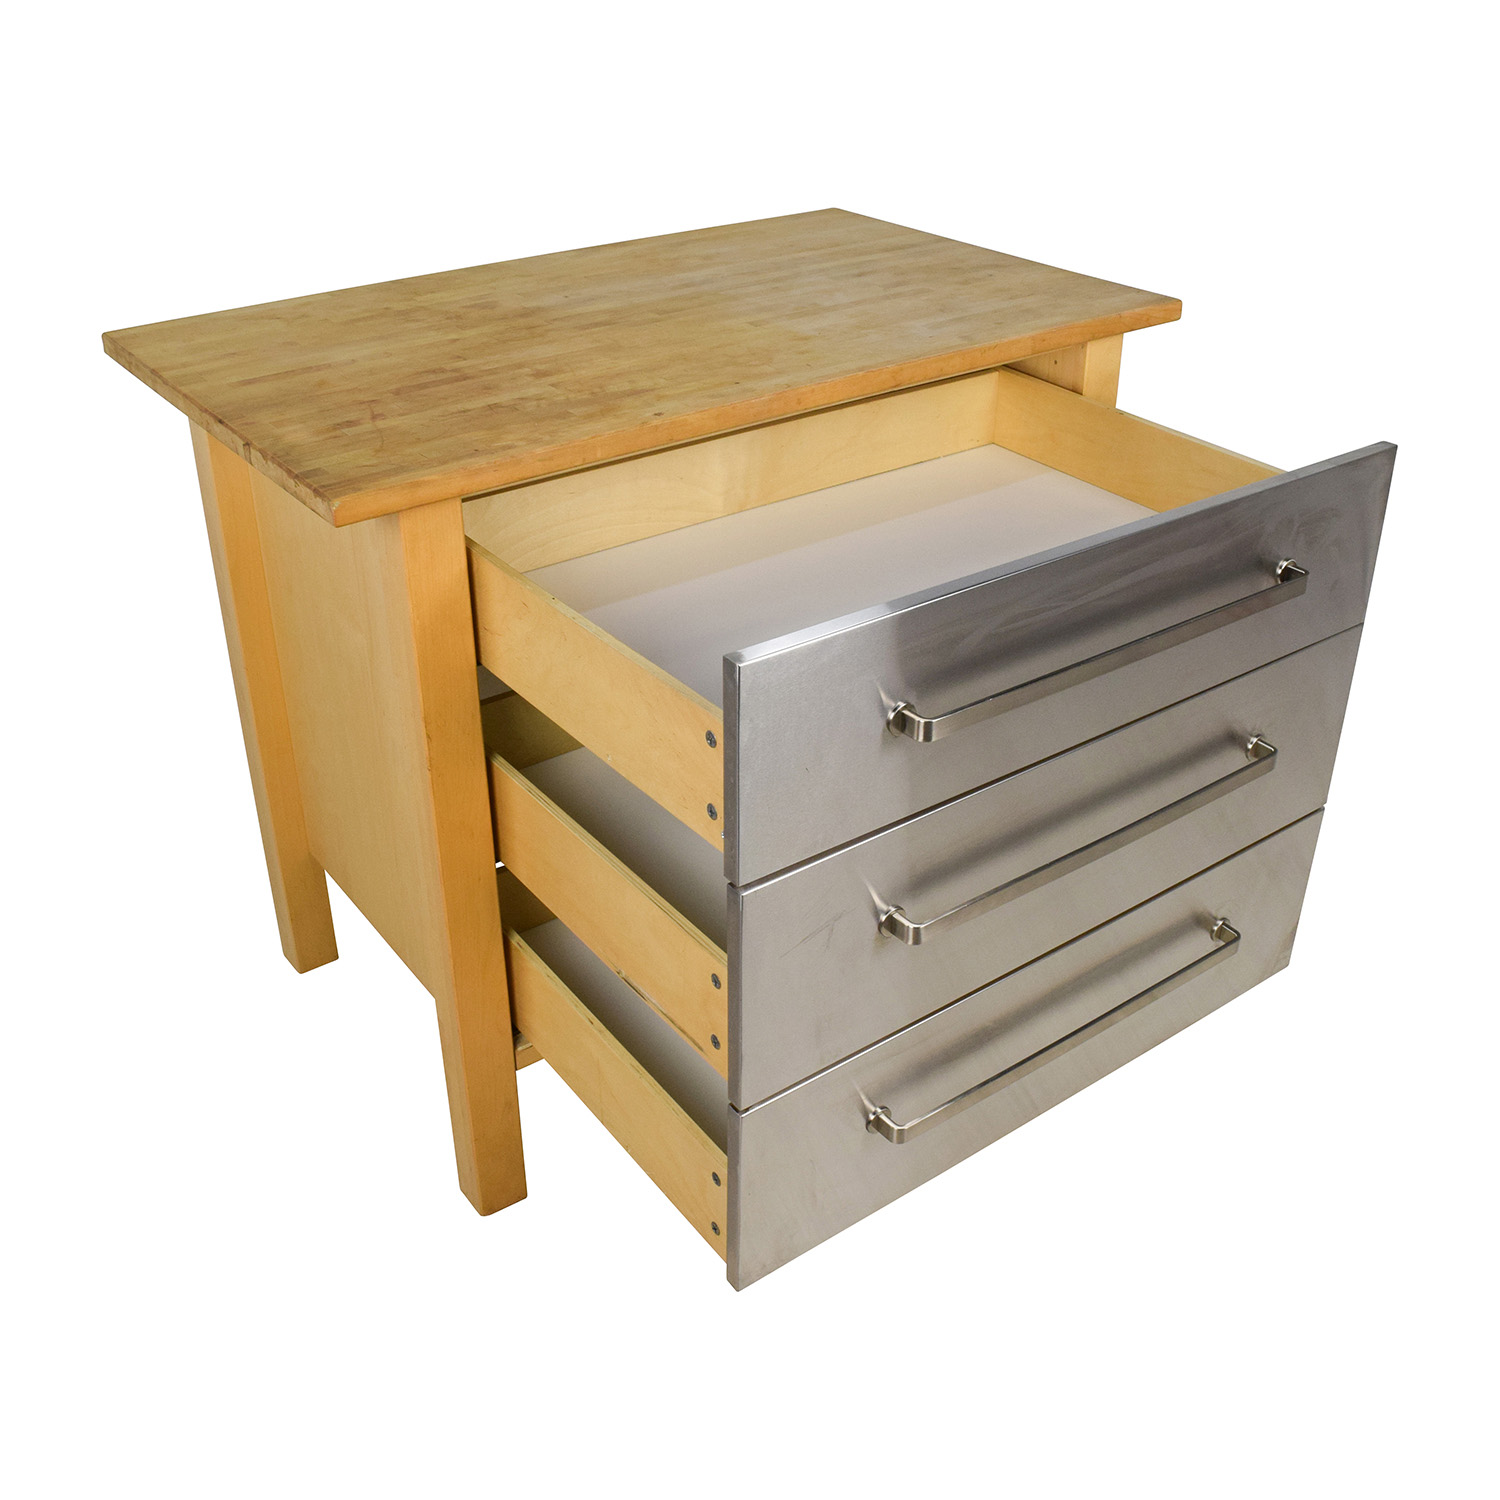 Ikea Varde Four Drawer Kitchen Island Assembly Tutorial Youtube  # Collection Meubles Varde Ikea